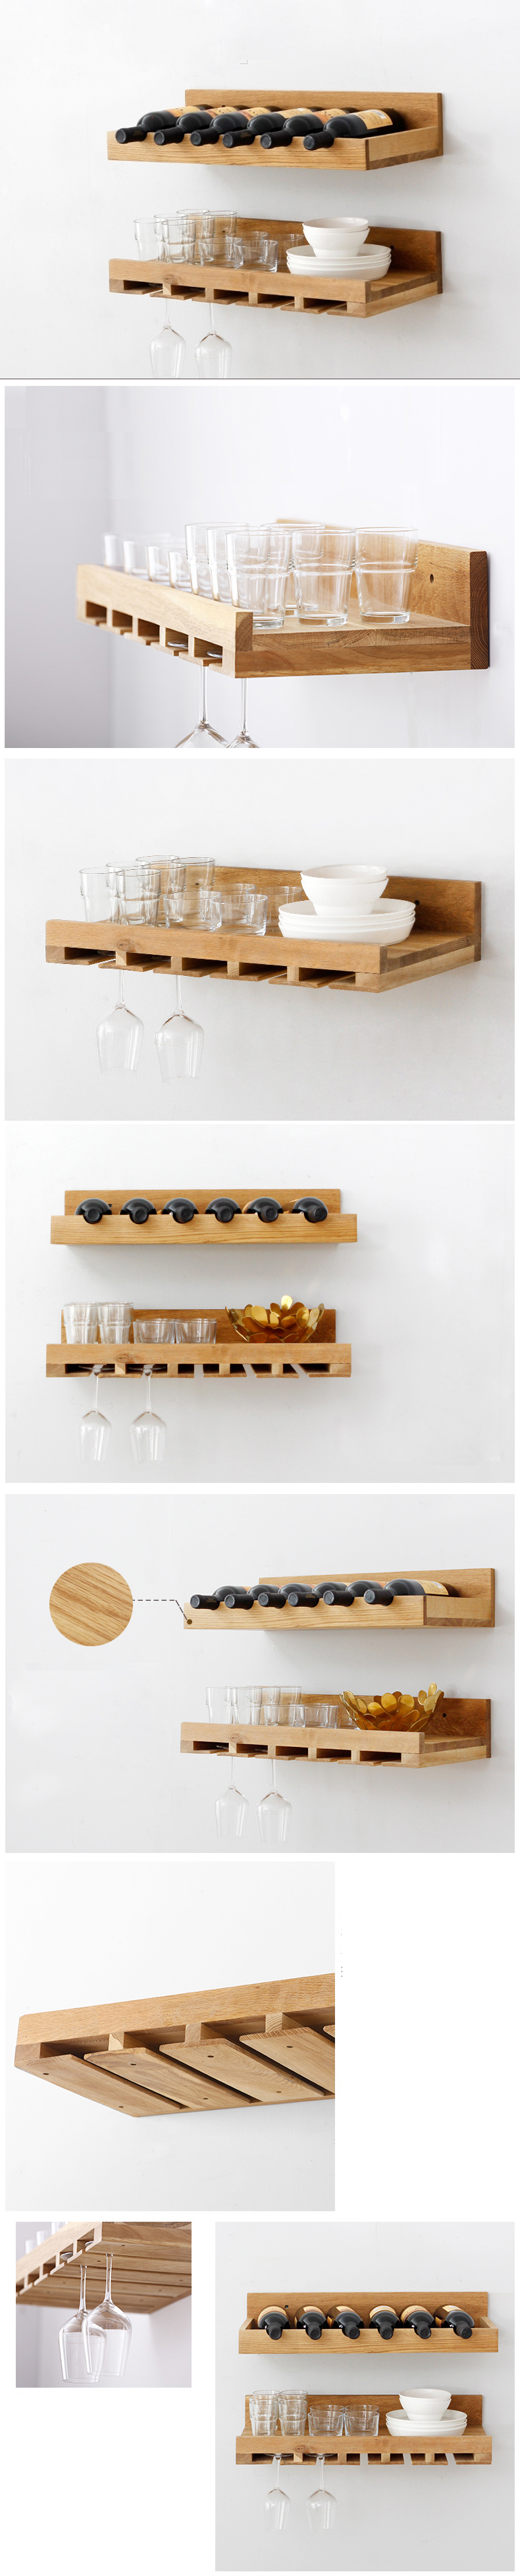 Wooden Wall-mounted Storage